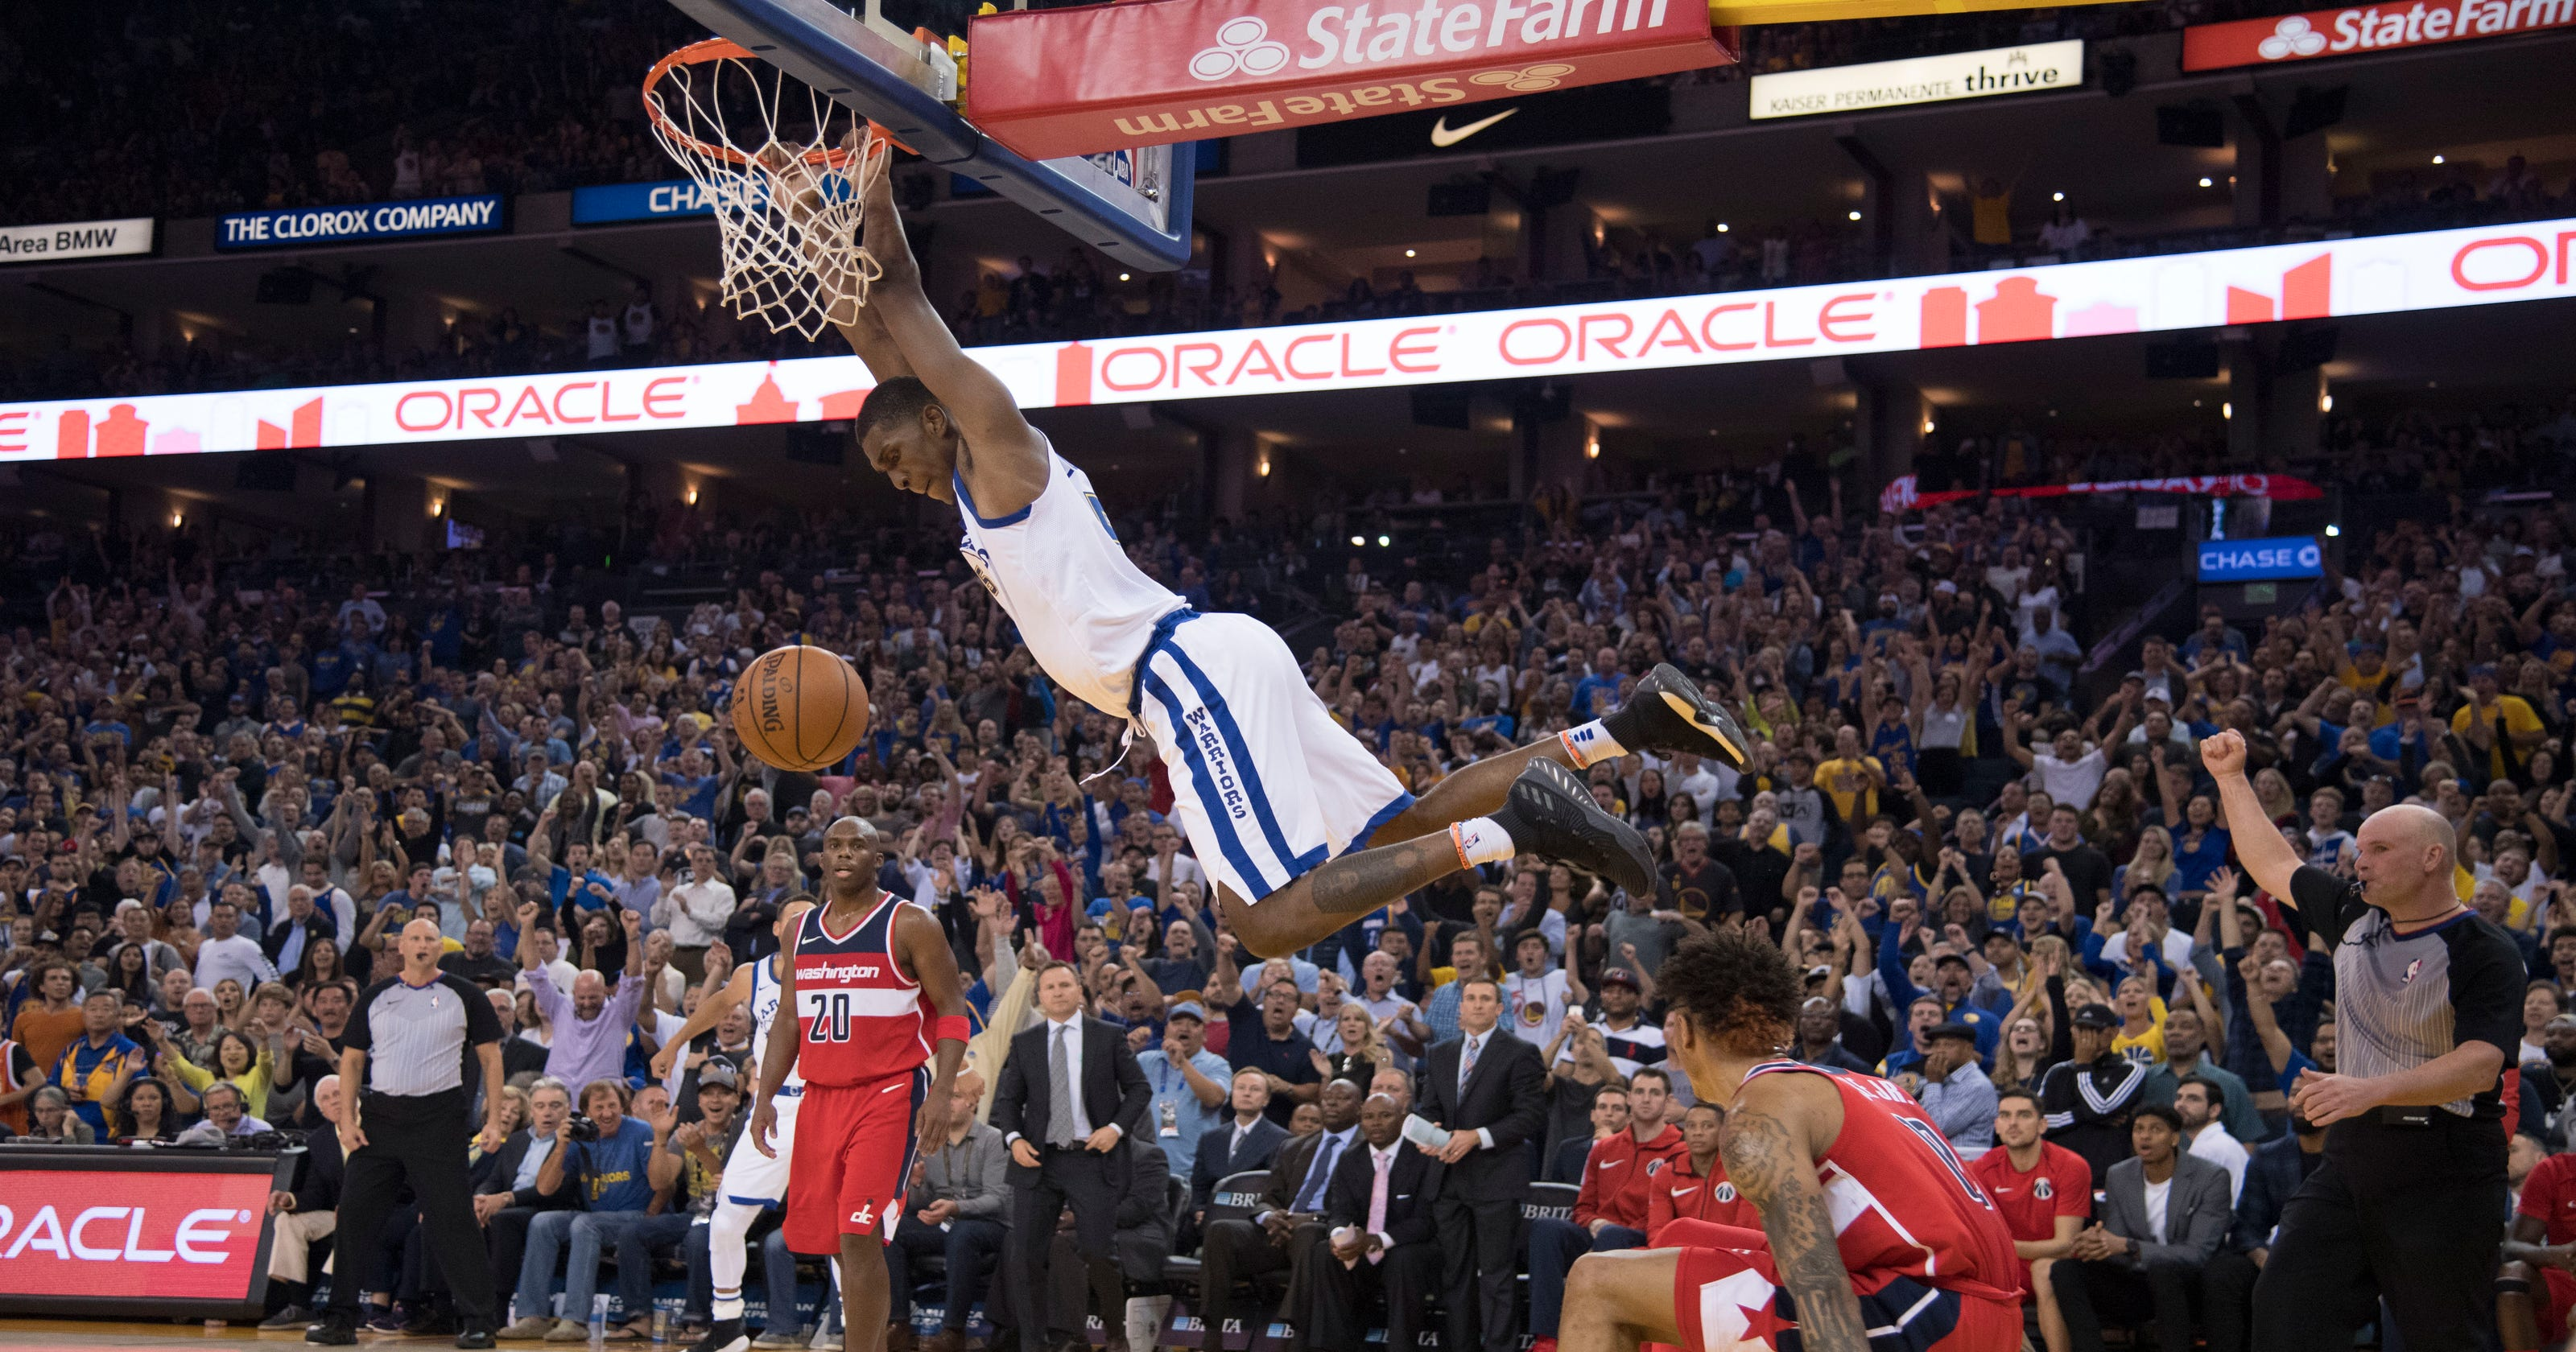 d21d71c01 Ejections mar Golden State Warriors  comeback win over Washington Wizards